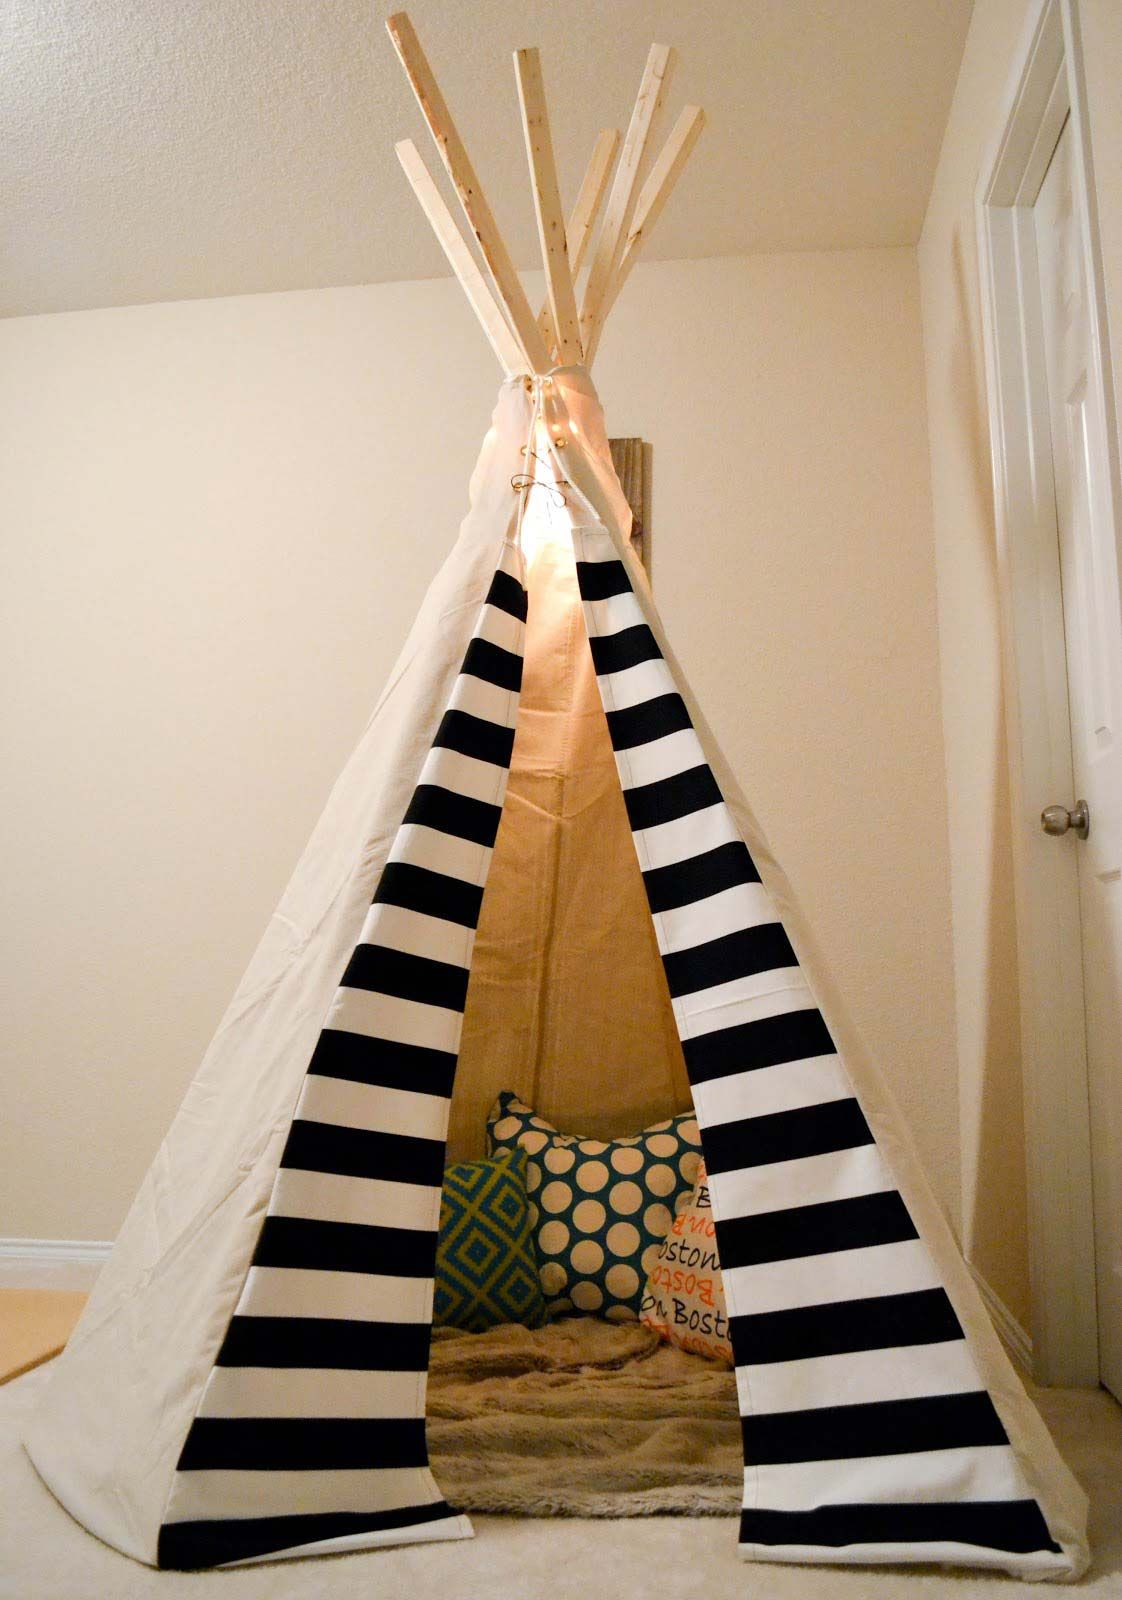 Design Teepee For Kids play teepee tutorials teepees tents pinterest diy fun for party or anytime ive been looking a fort idea them